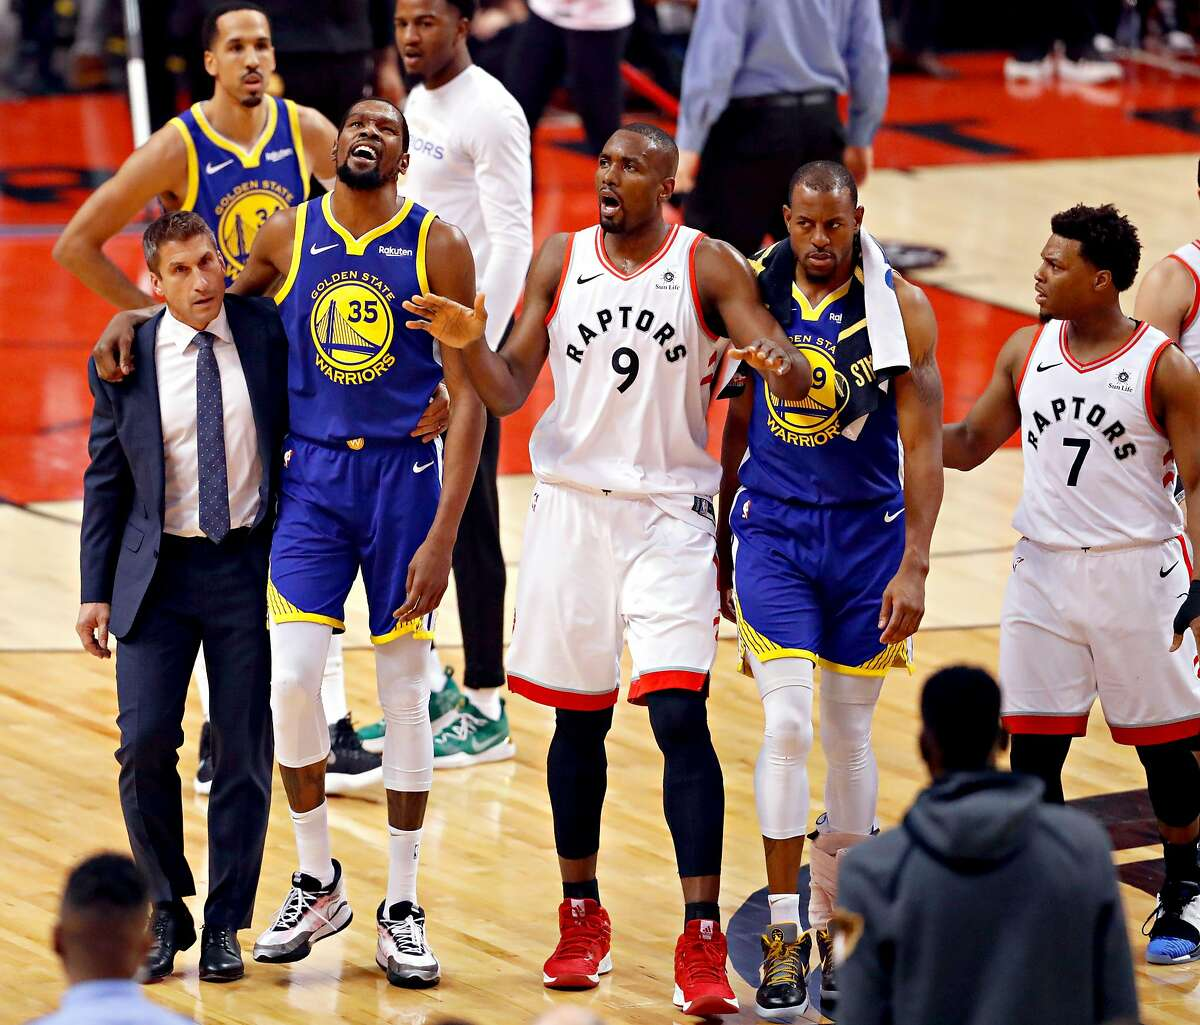 Golden State Warriors' Kevin Durant is helped off the court by the team's director of sports medicine Rick Celebrini as Toronto Raptors' Serge Ibaka signals to the crowd in the first quarter during game 5 of the NBA Finals between the Golden State Warriors and the Toronto Raptors at Scotiabank Arena on Monday, June 10, 2019 in Toronto, Ontario, Canada.